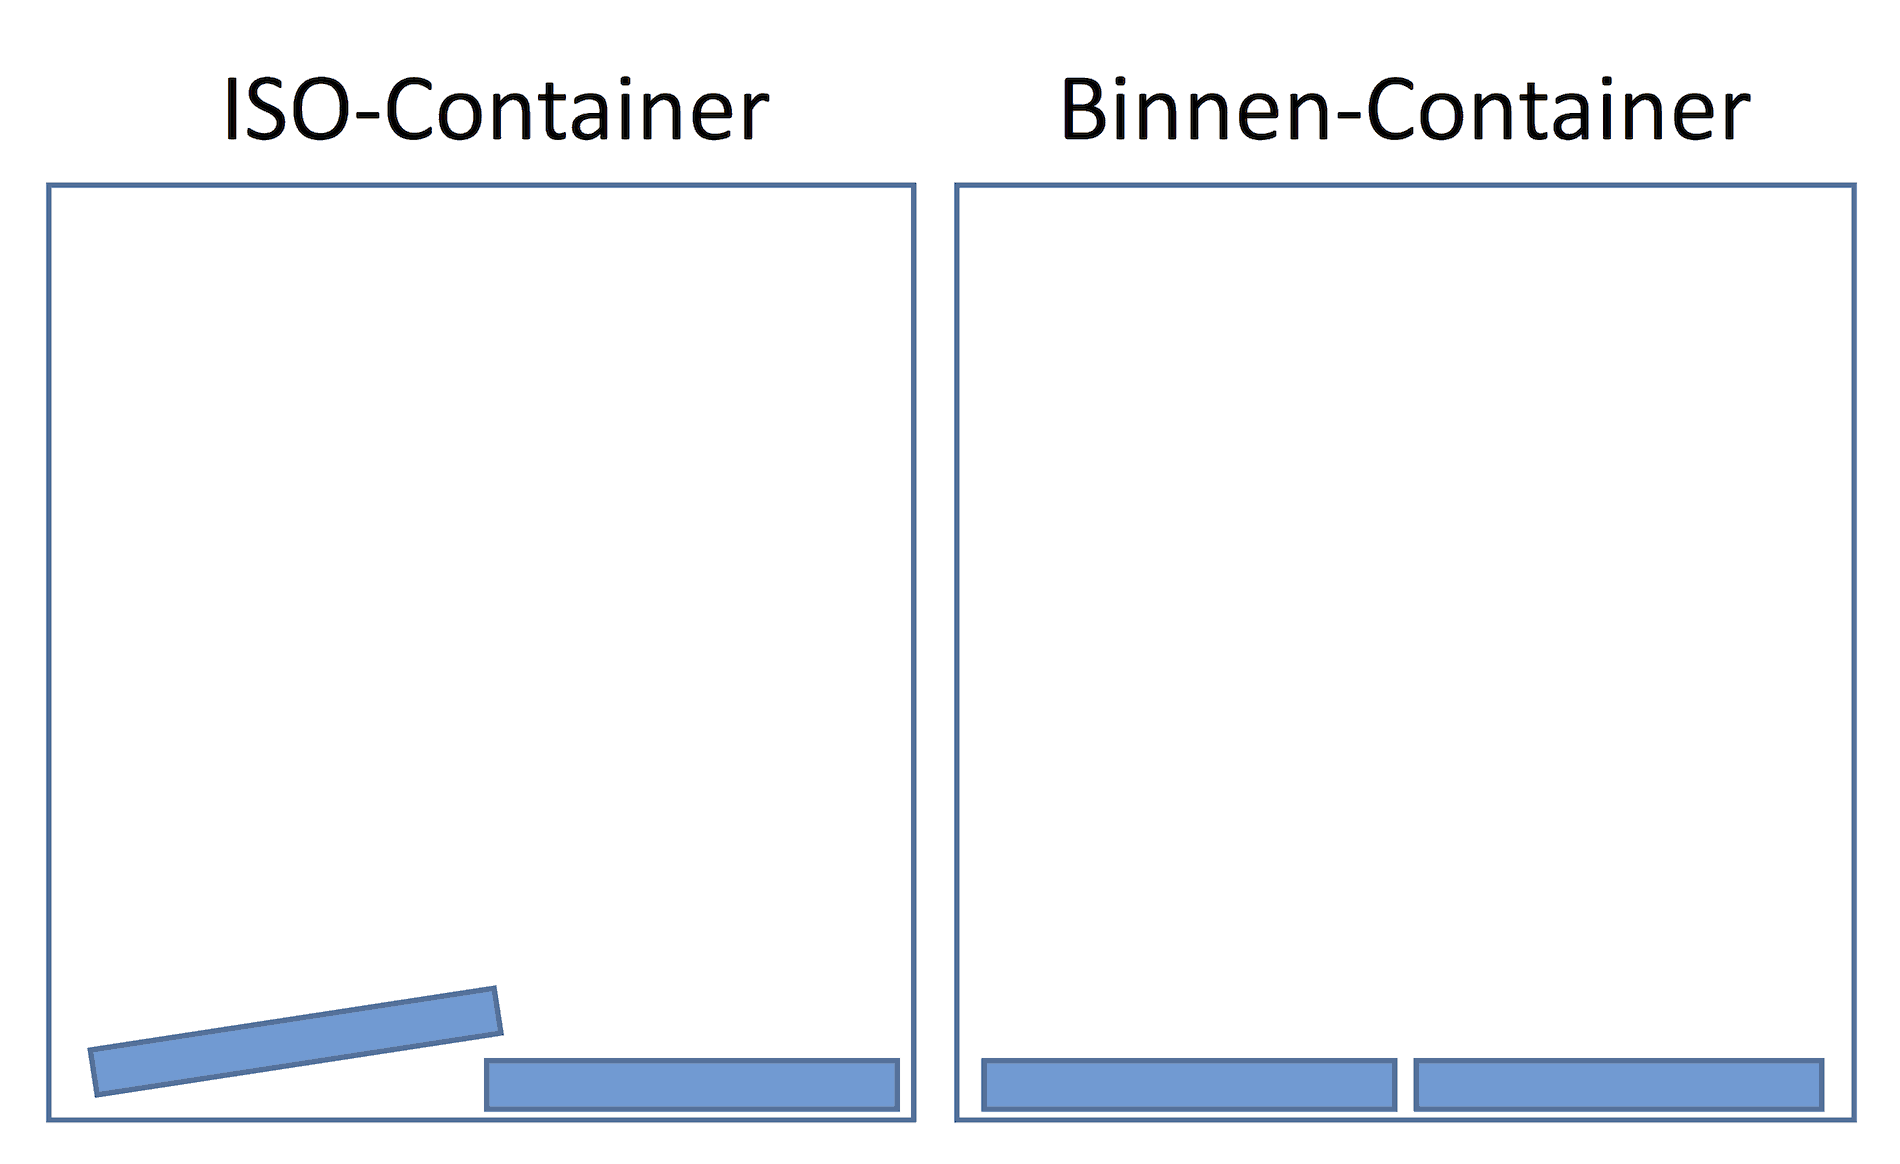 ISO-Container vs. Binnencontainer